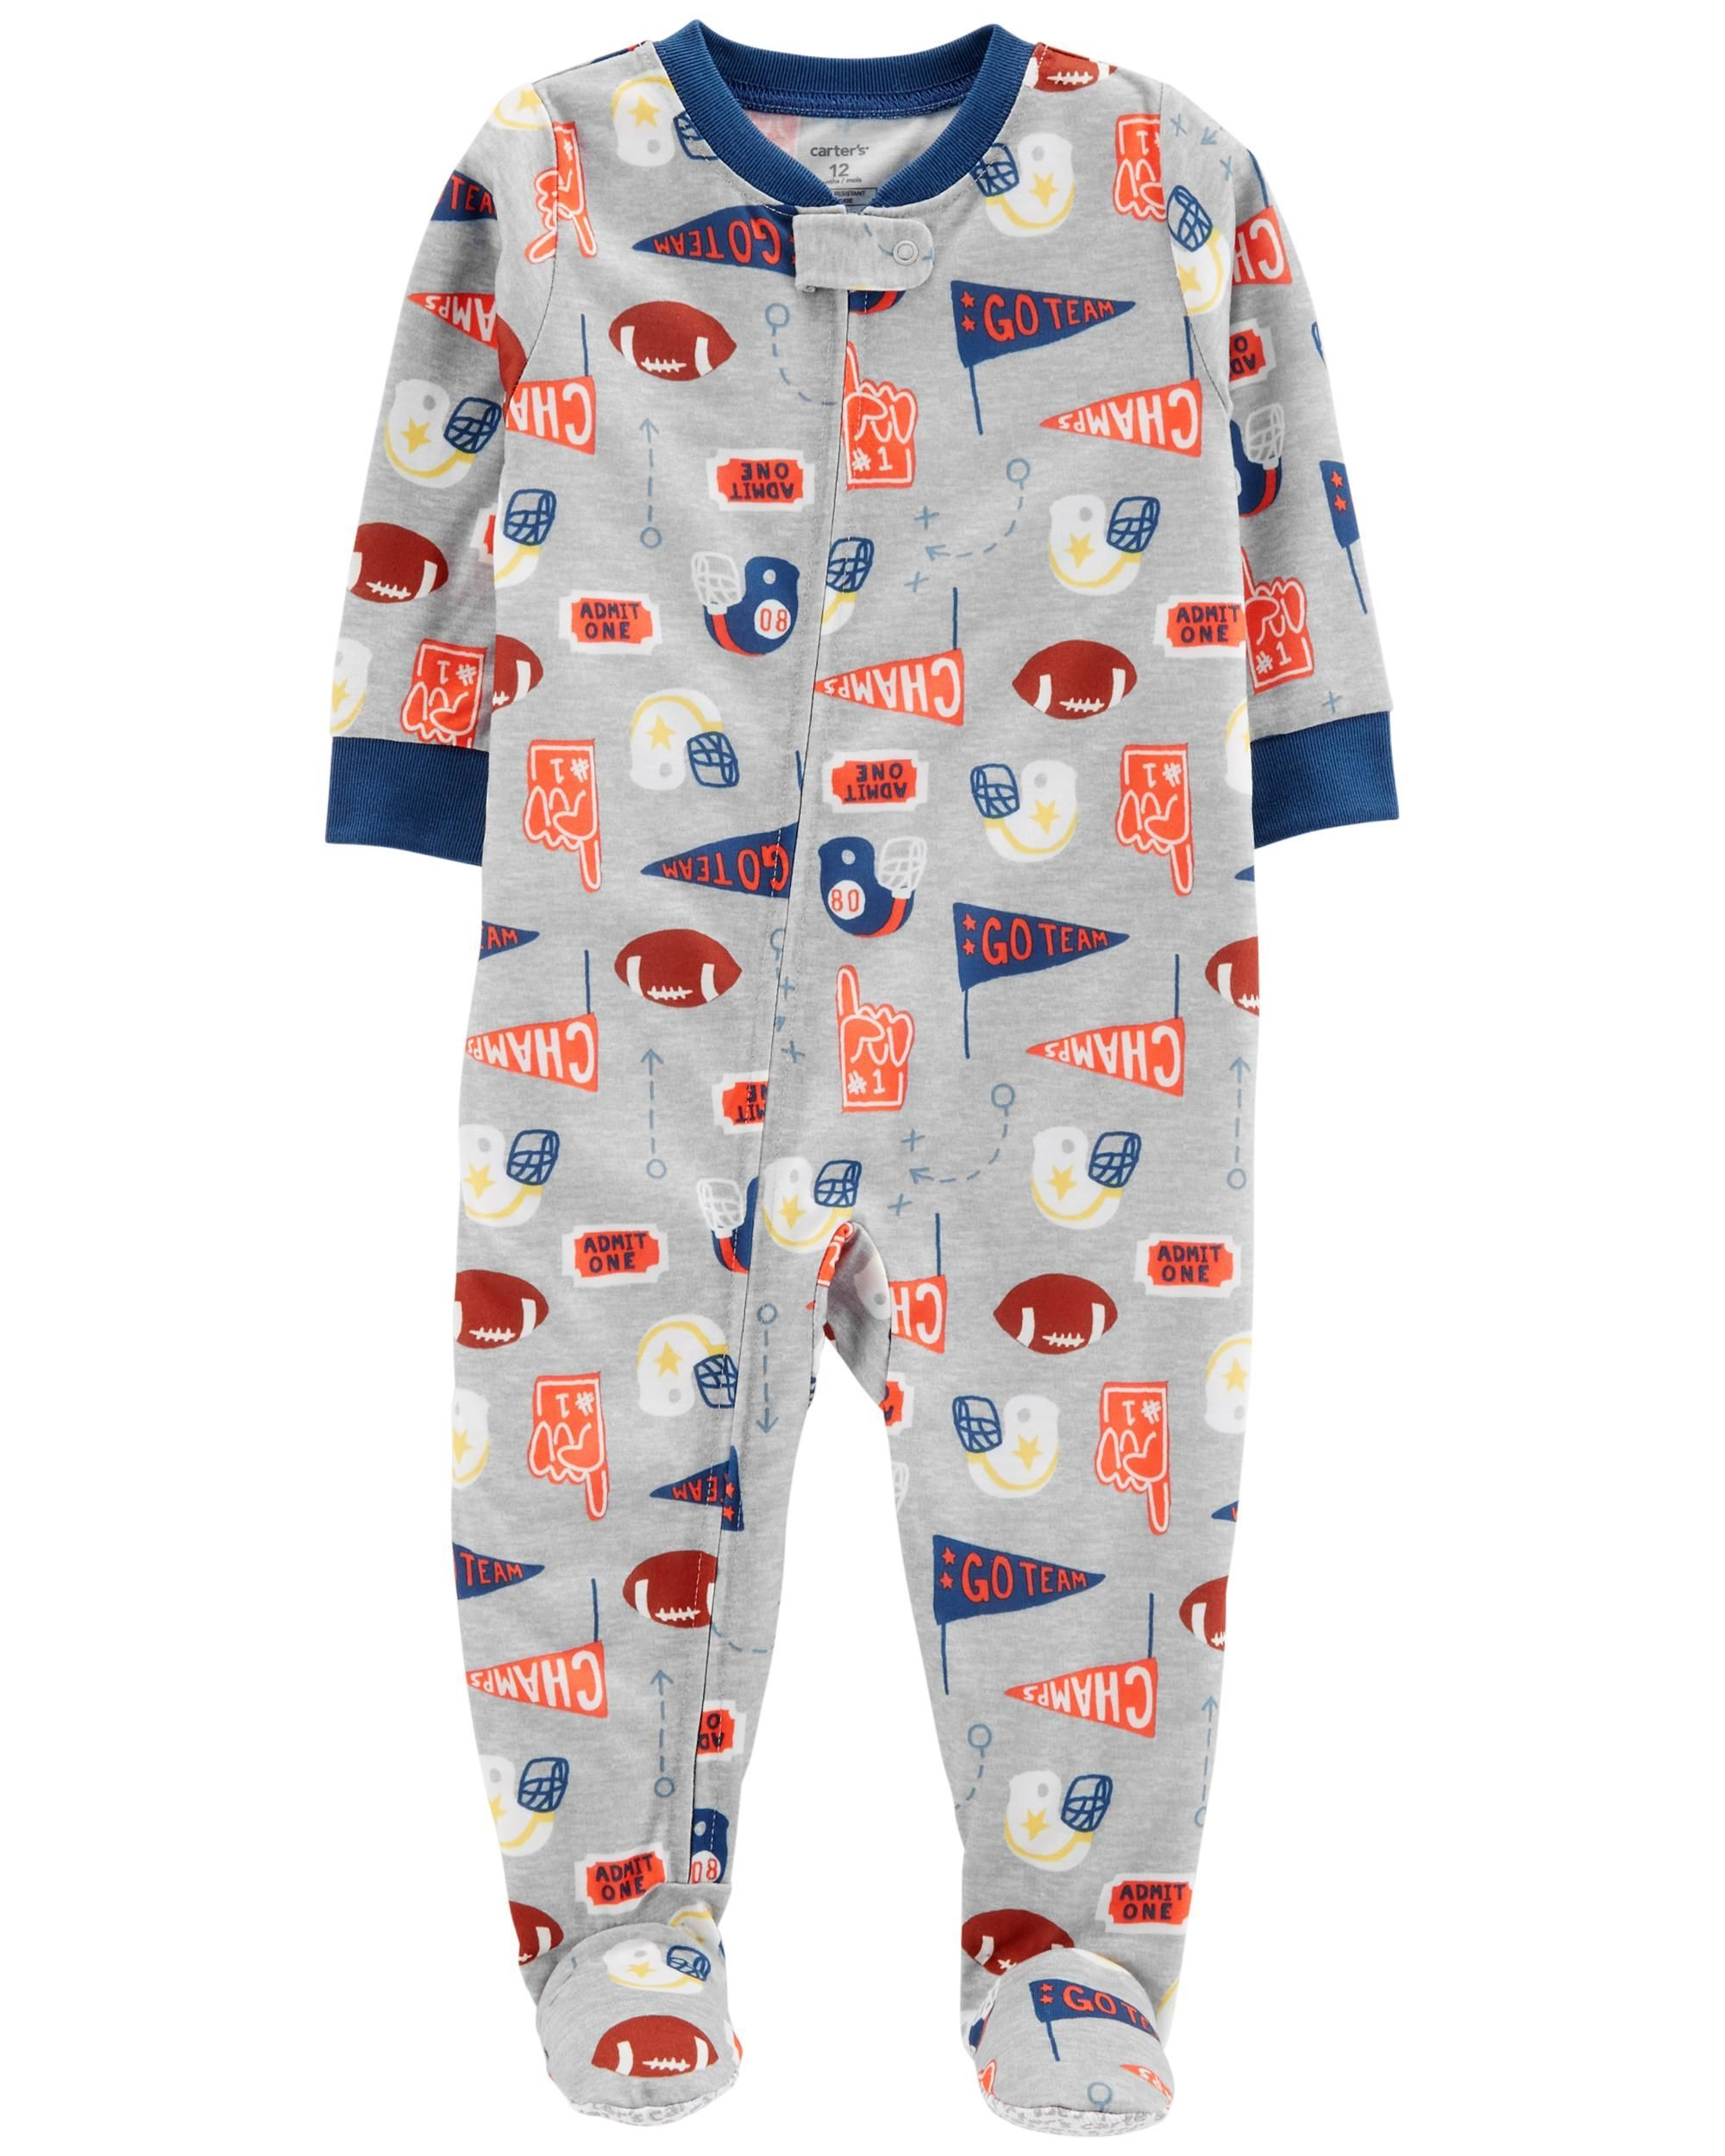 92cdc9633 Crafted in soft polyester, this 1-piece takes him from nap time to play  time in no time! Zip-up design makes for quick changes and easy dressing.